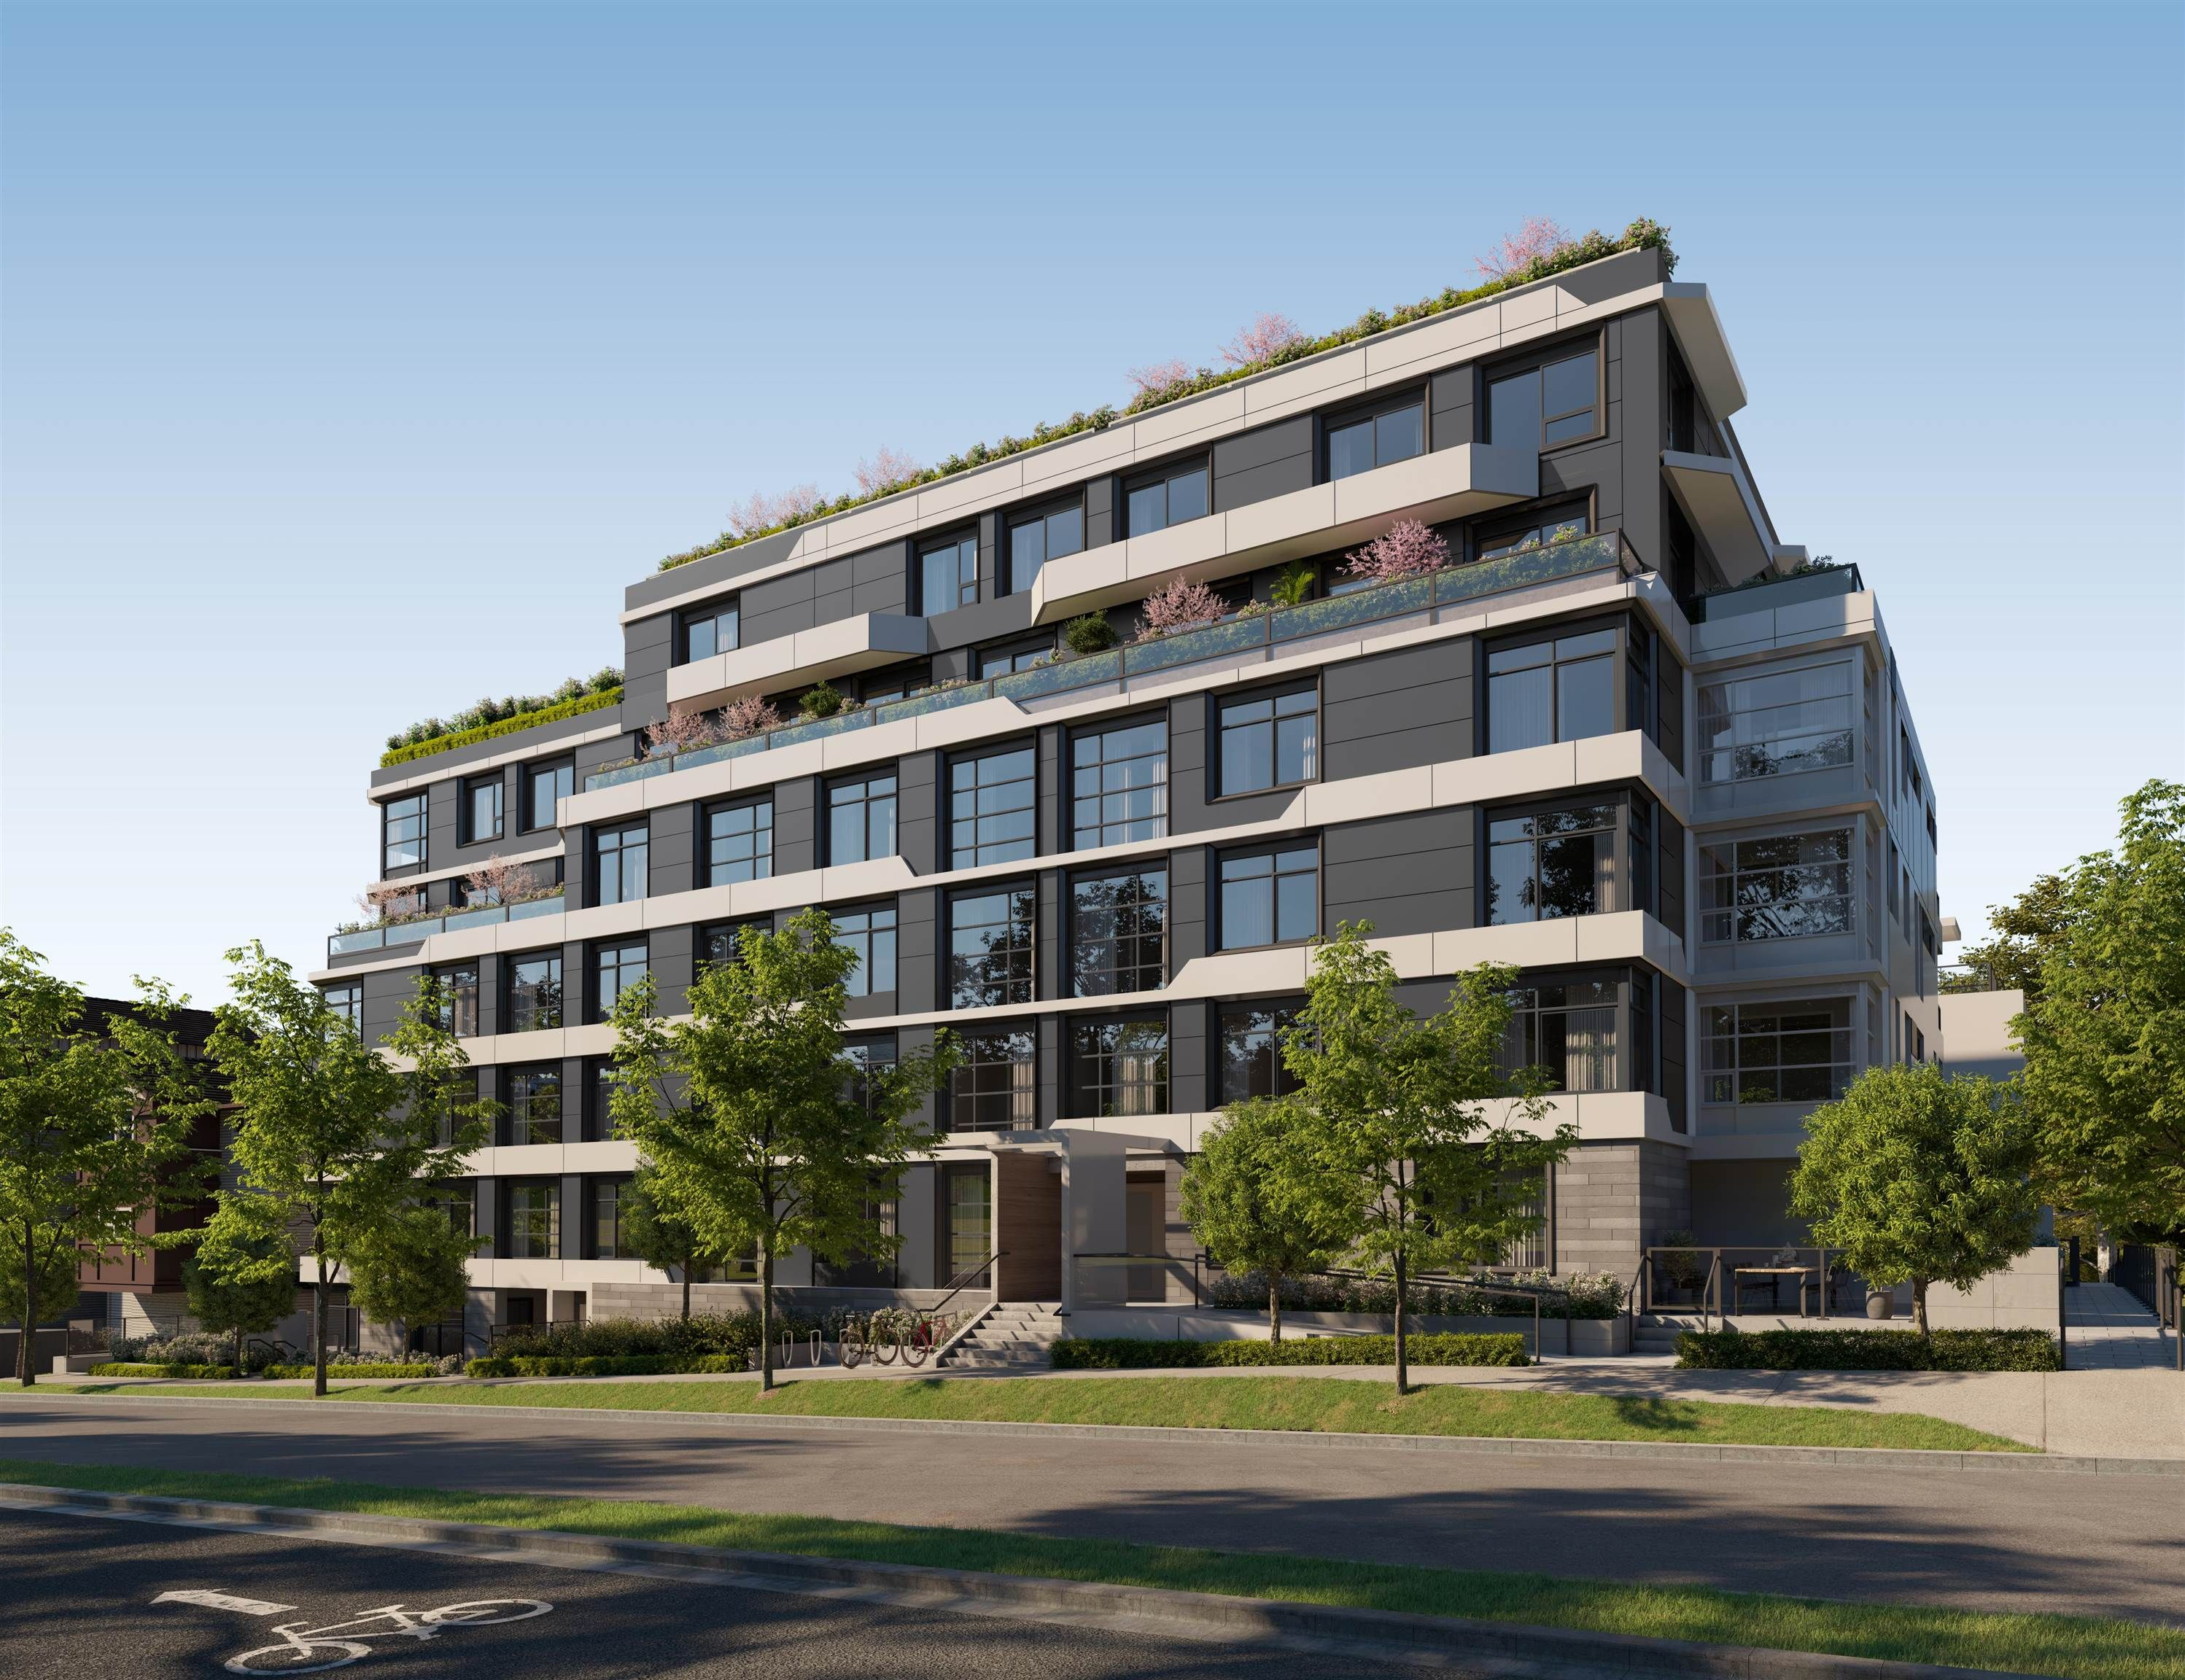 """Main Photo: 101 3264 VANNESS Avenue in Vancouver: Collingwood VE Condo for sale in """"Clive at Collingwood"""" (Vancouver East)  : MLS®# R2625630"""